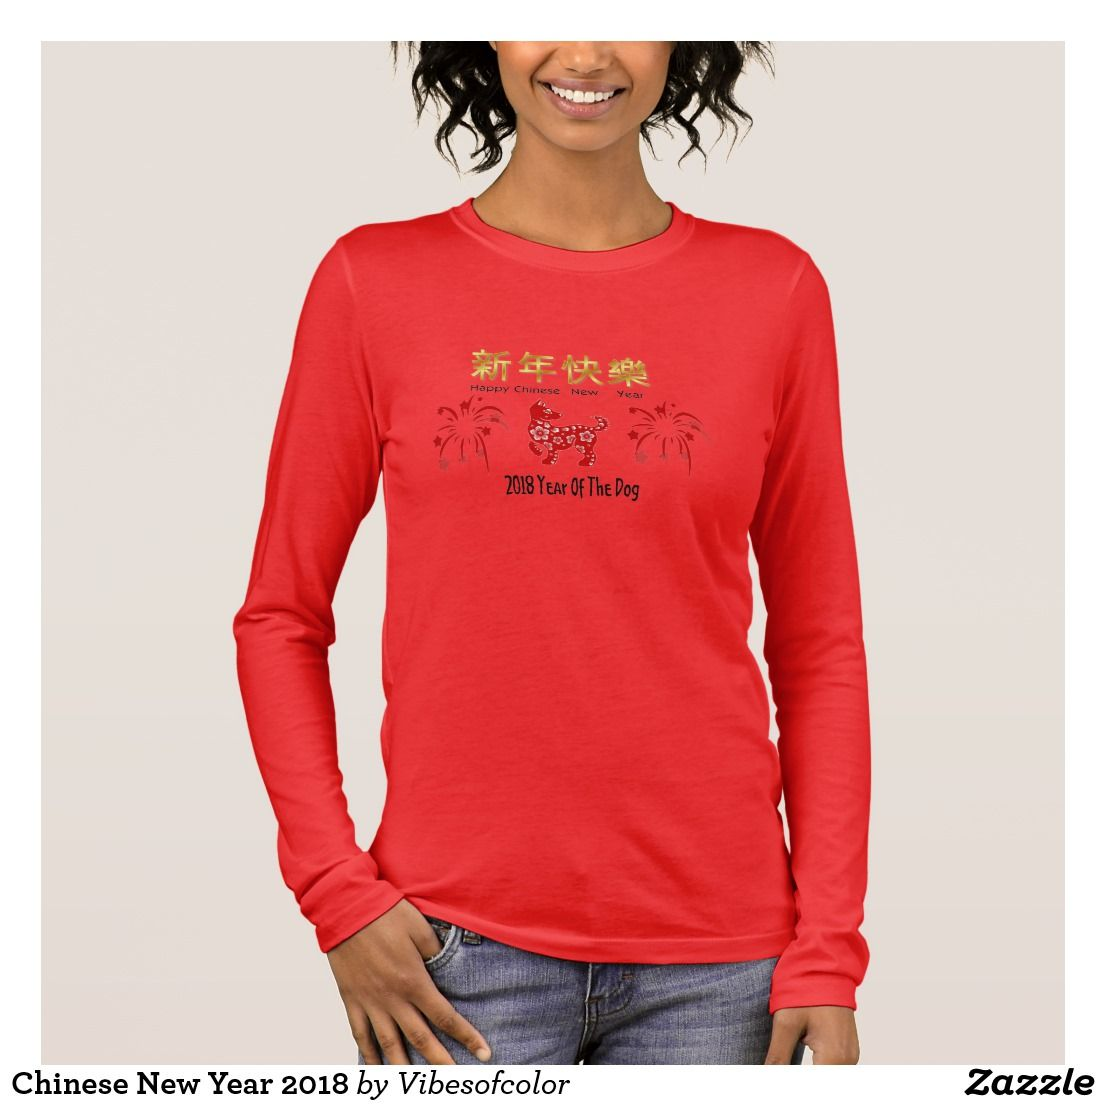 Chinese New Year 2018 Long Sleeve T-Shirt | My Zazzle Designs ...